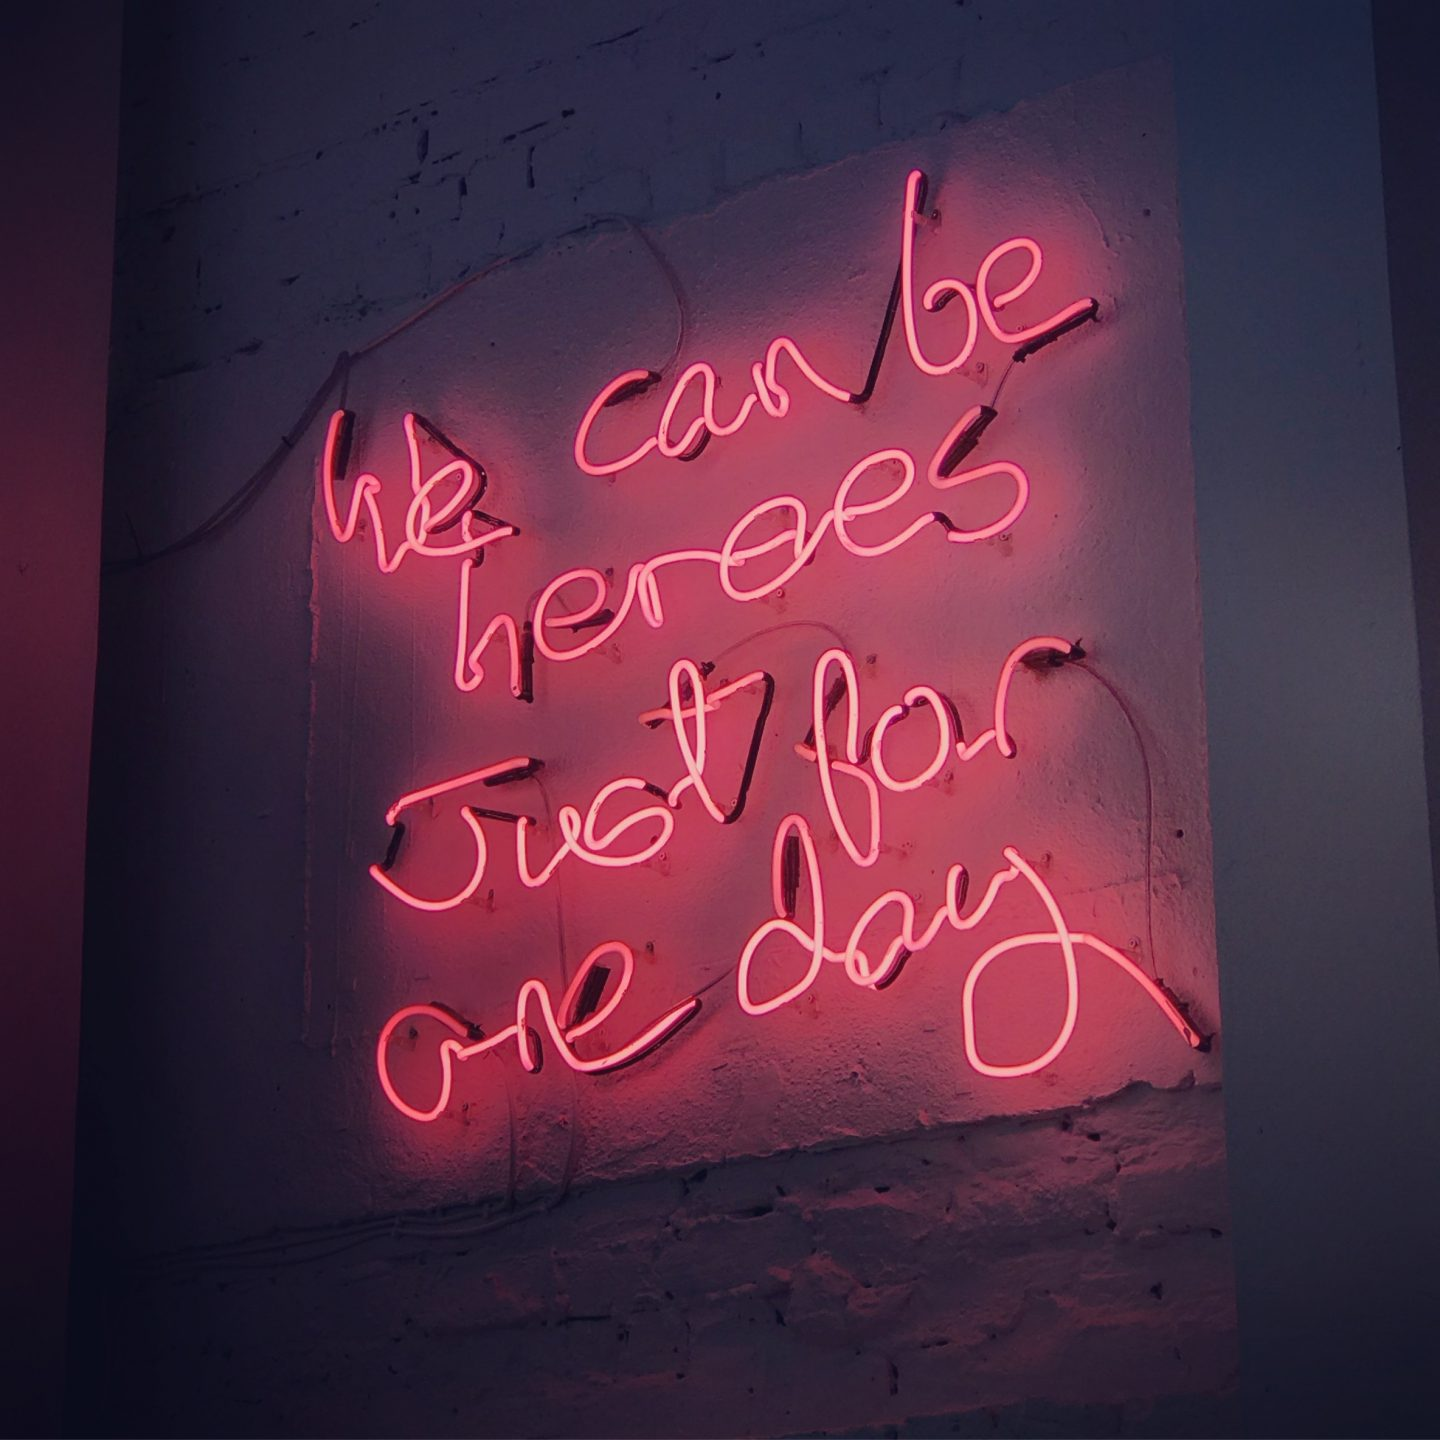 Bowie lyrics neon sign